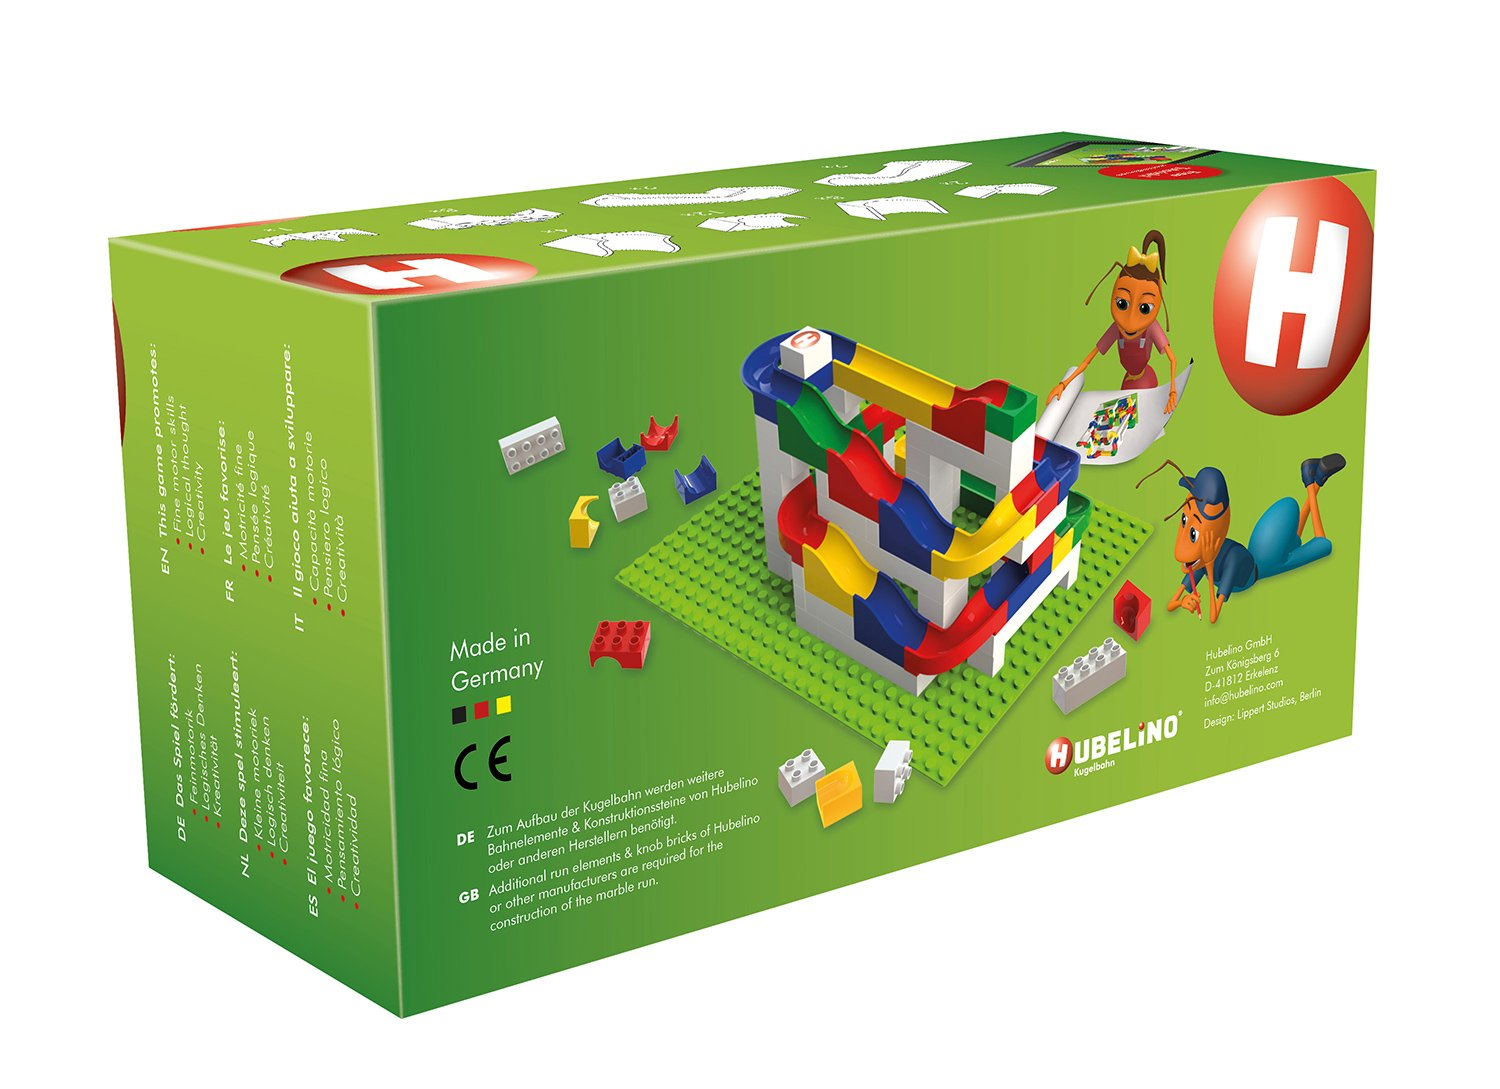 Certified and Award-Winning Marble Run 39-Piece Run Elements Expansion Set 2016 Hubelino Marble Run 100/% compatible with Duplo 420343 the Original Made in Germany!